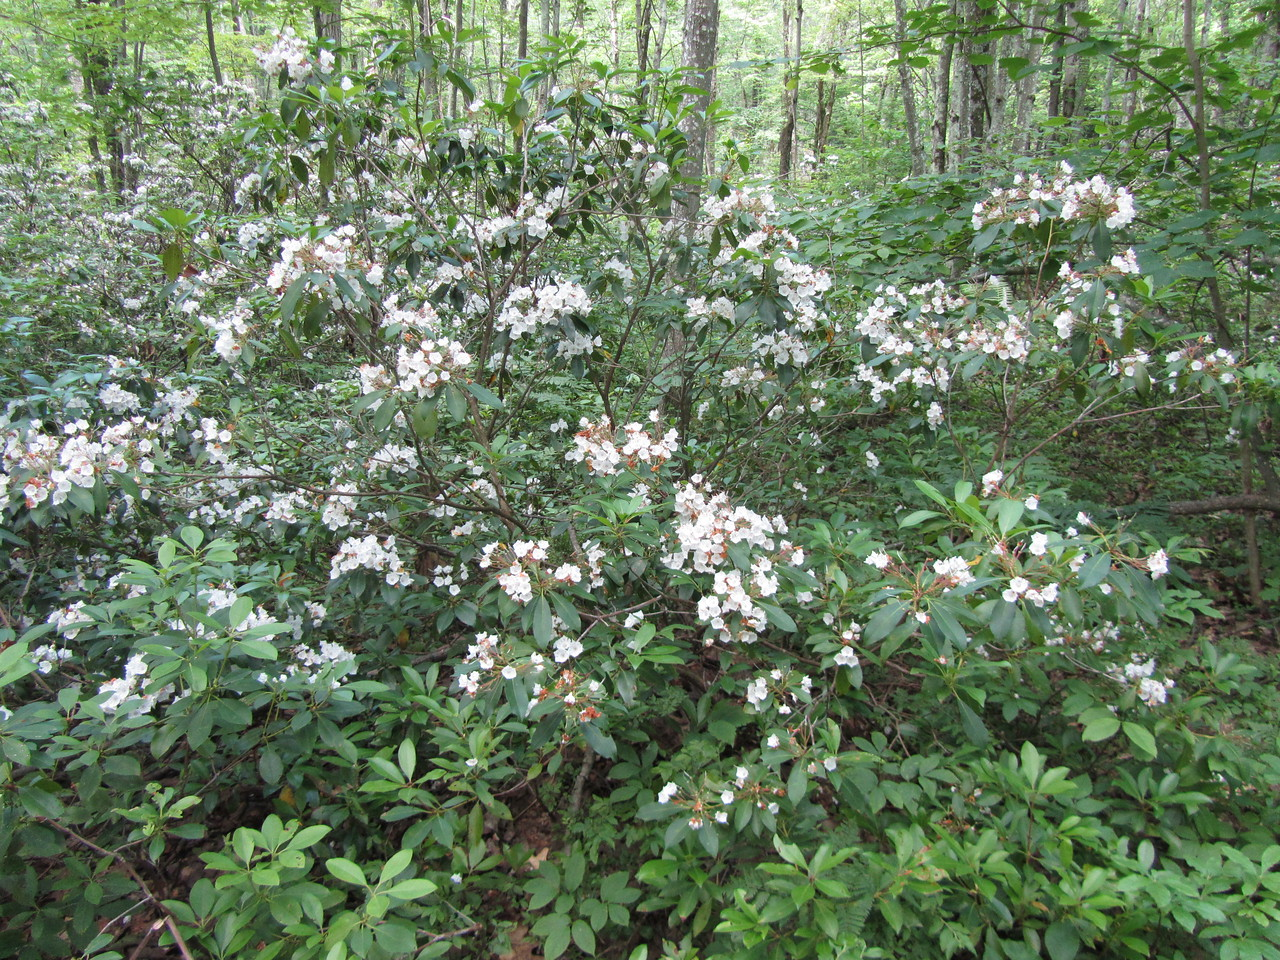 Mountain Laurel. I can honestly say there was 10,000 acres of these flowers all in bloom. It was beautiful.